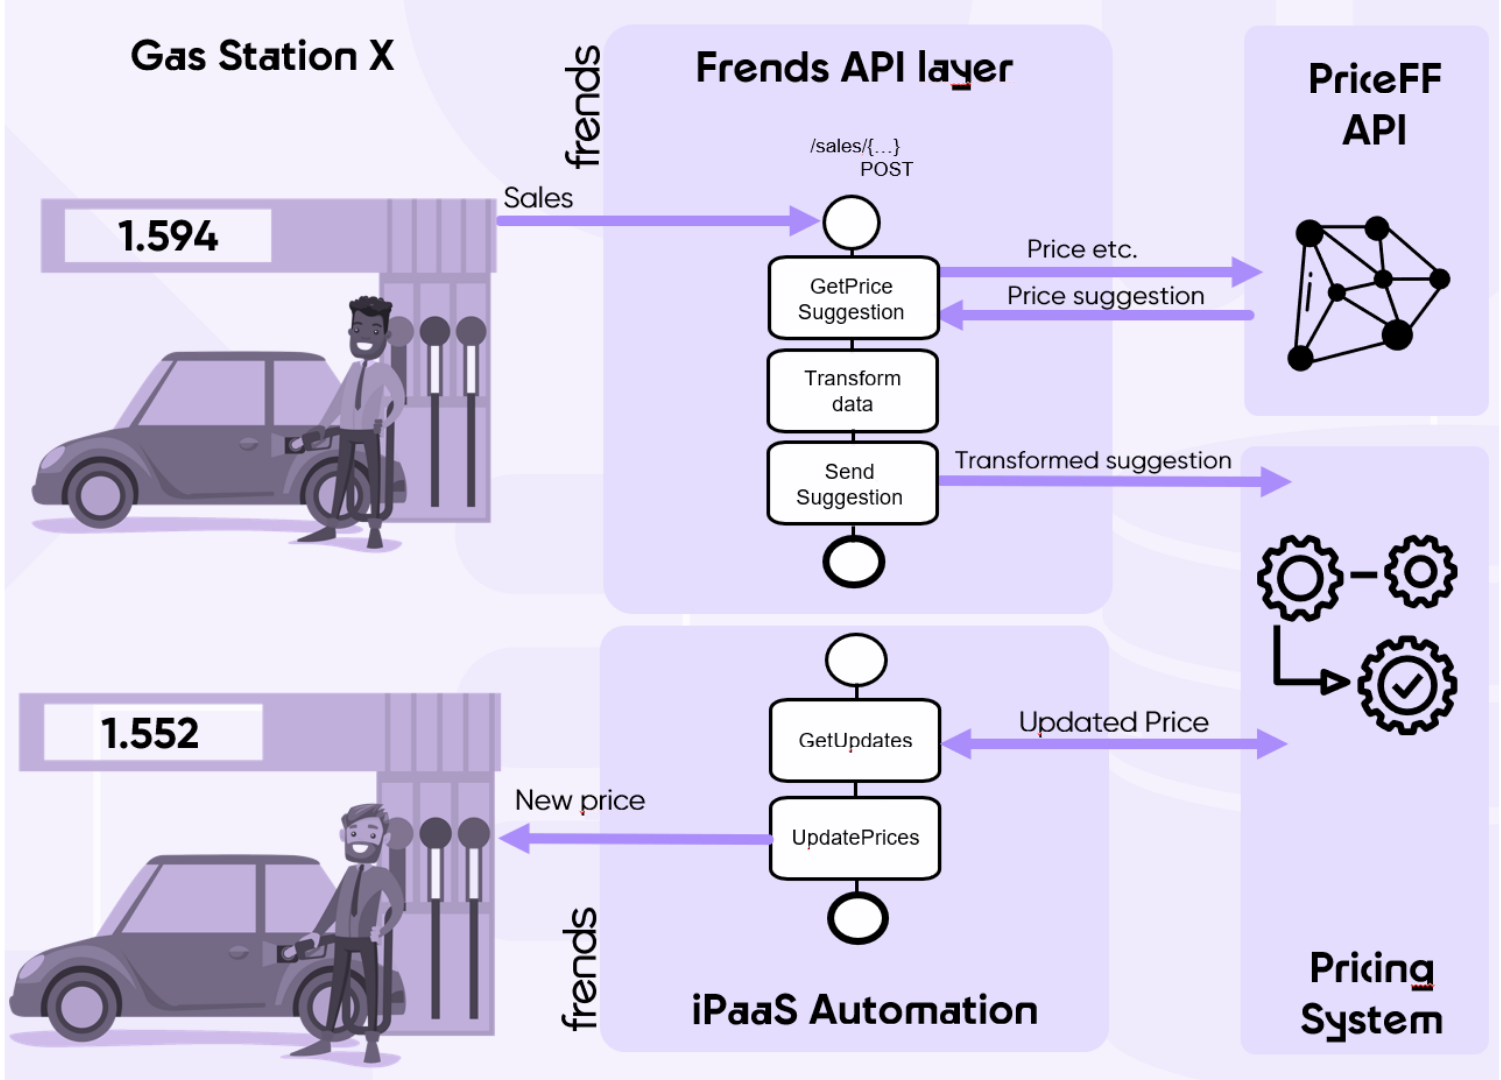 frends api layer